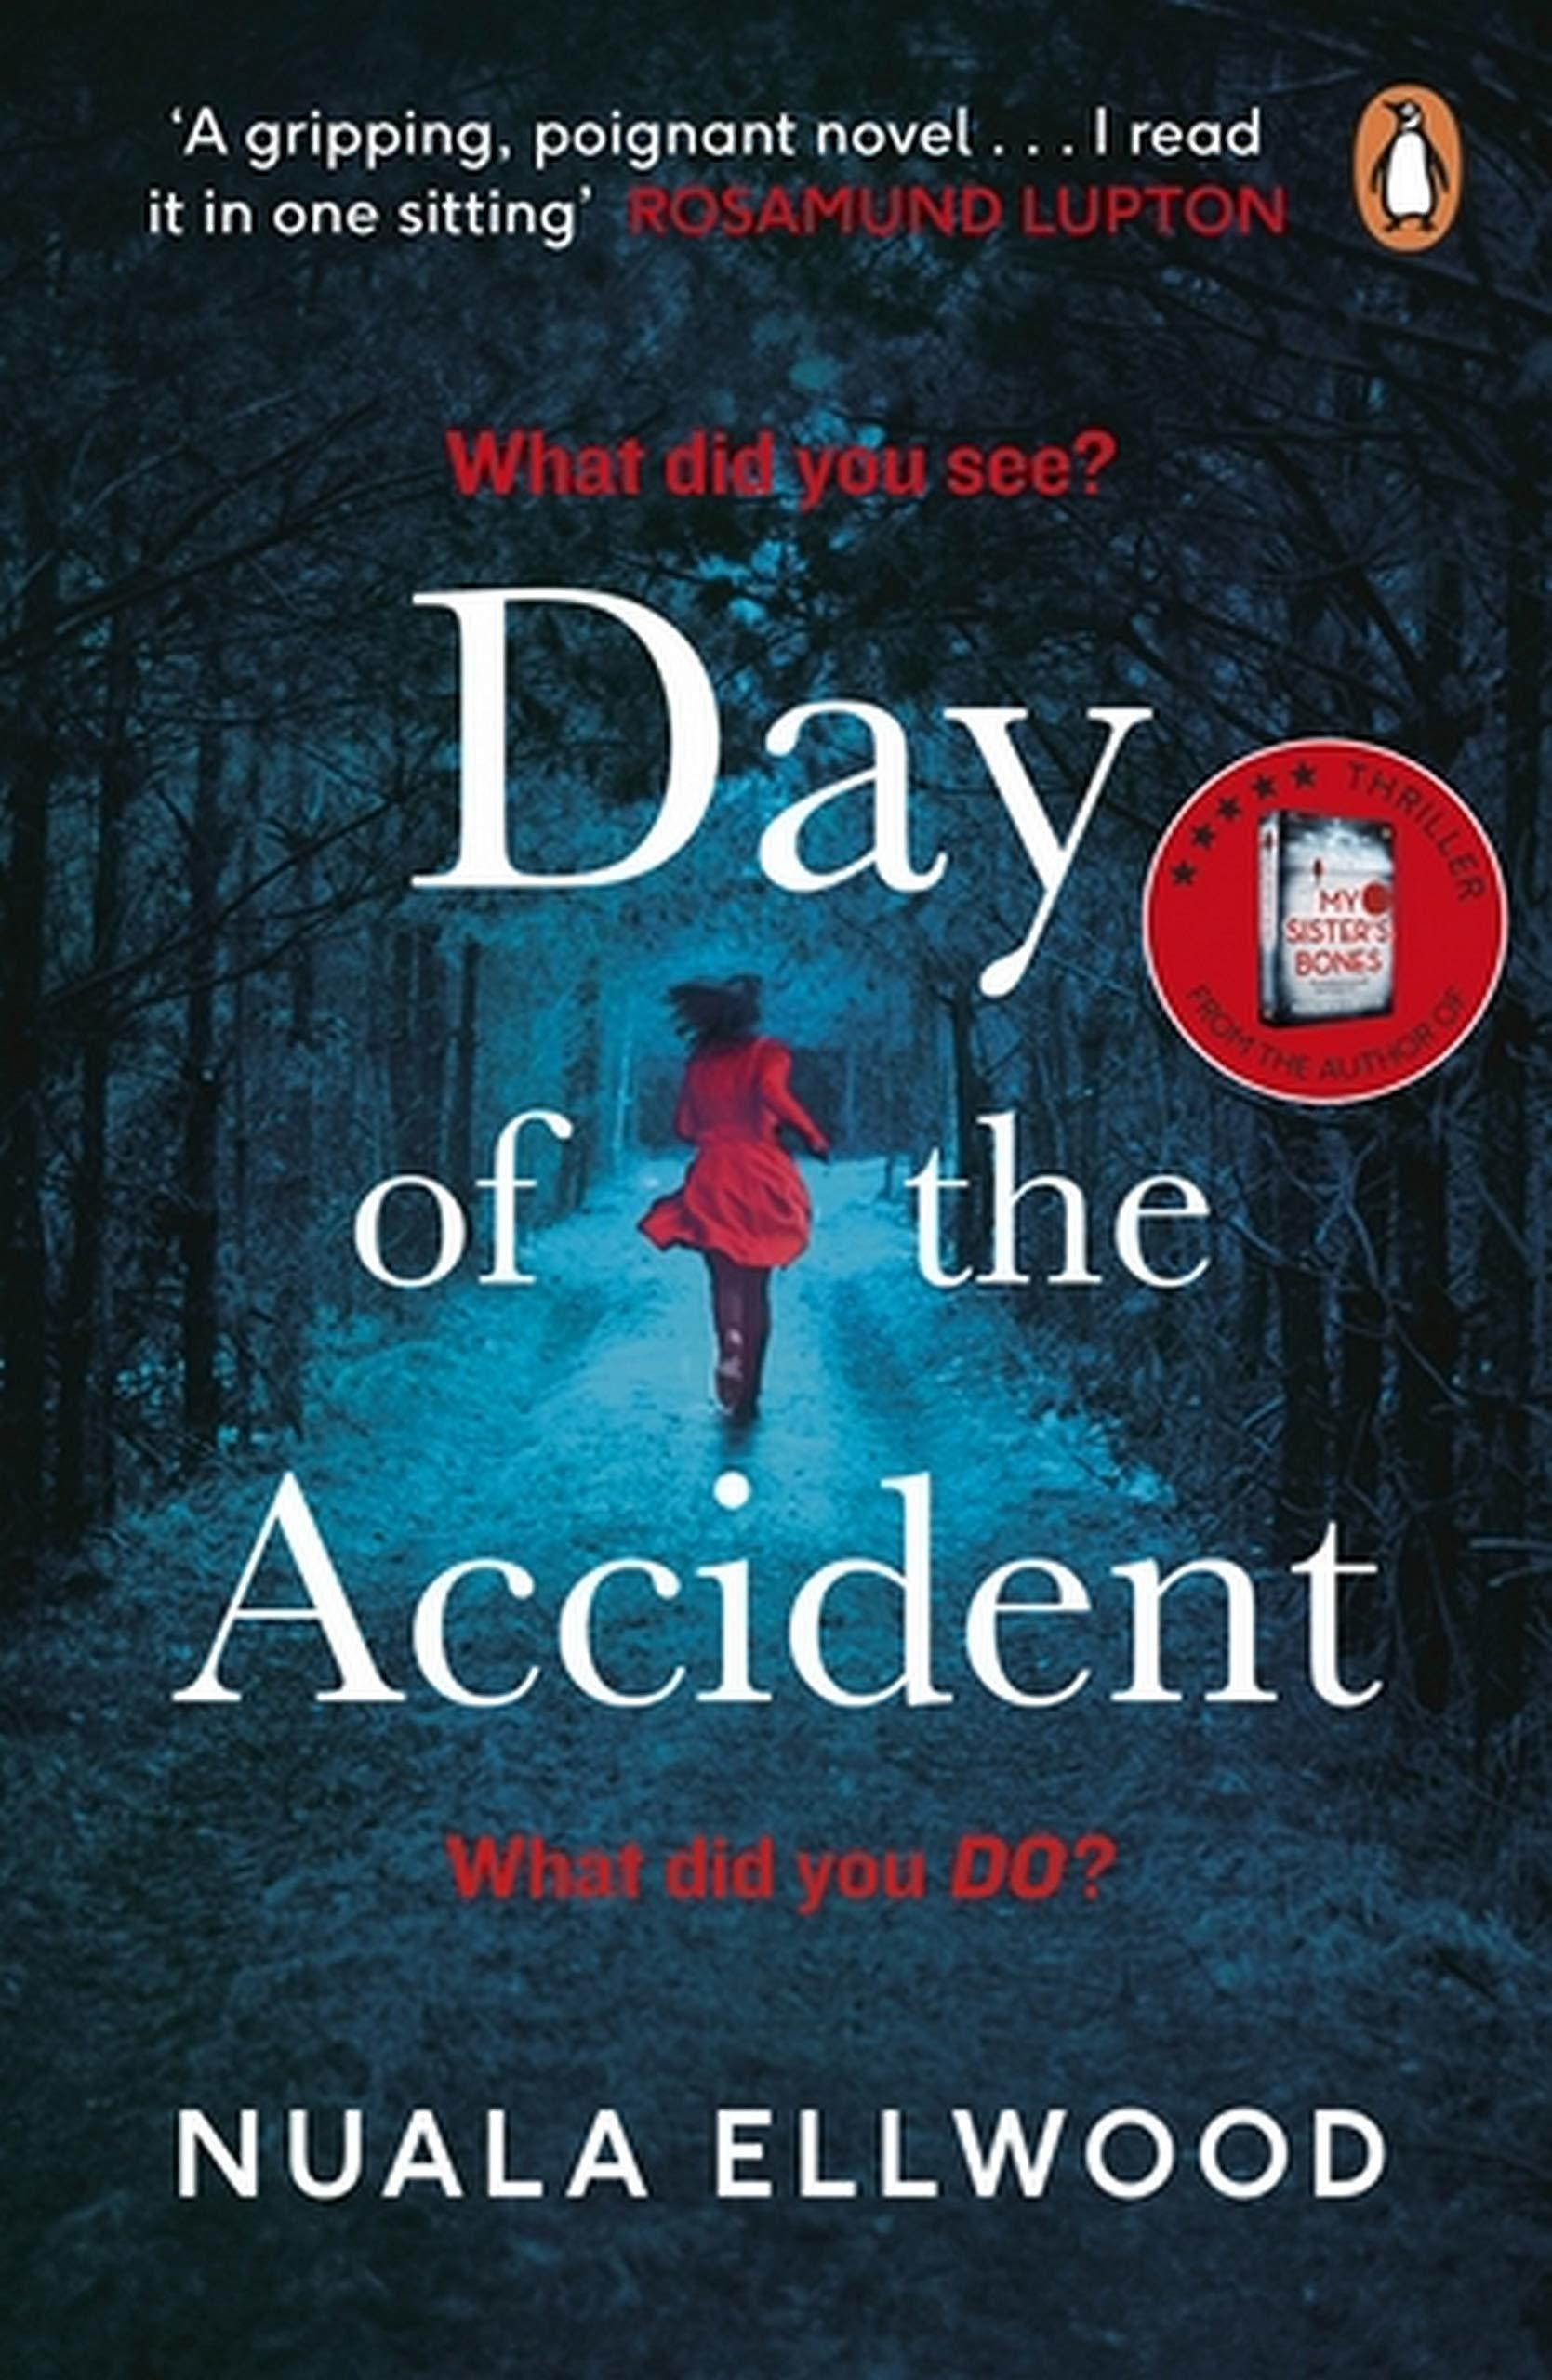 Cover of The Day of the Accident by Nuala Ellwood